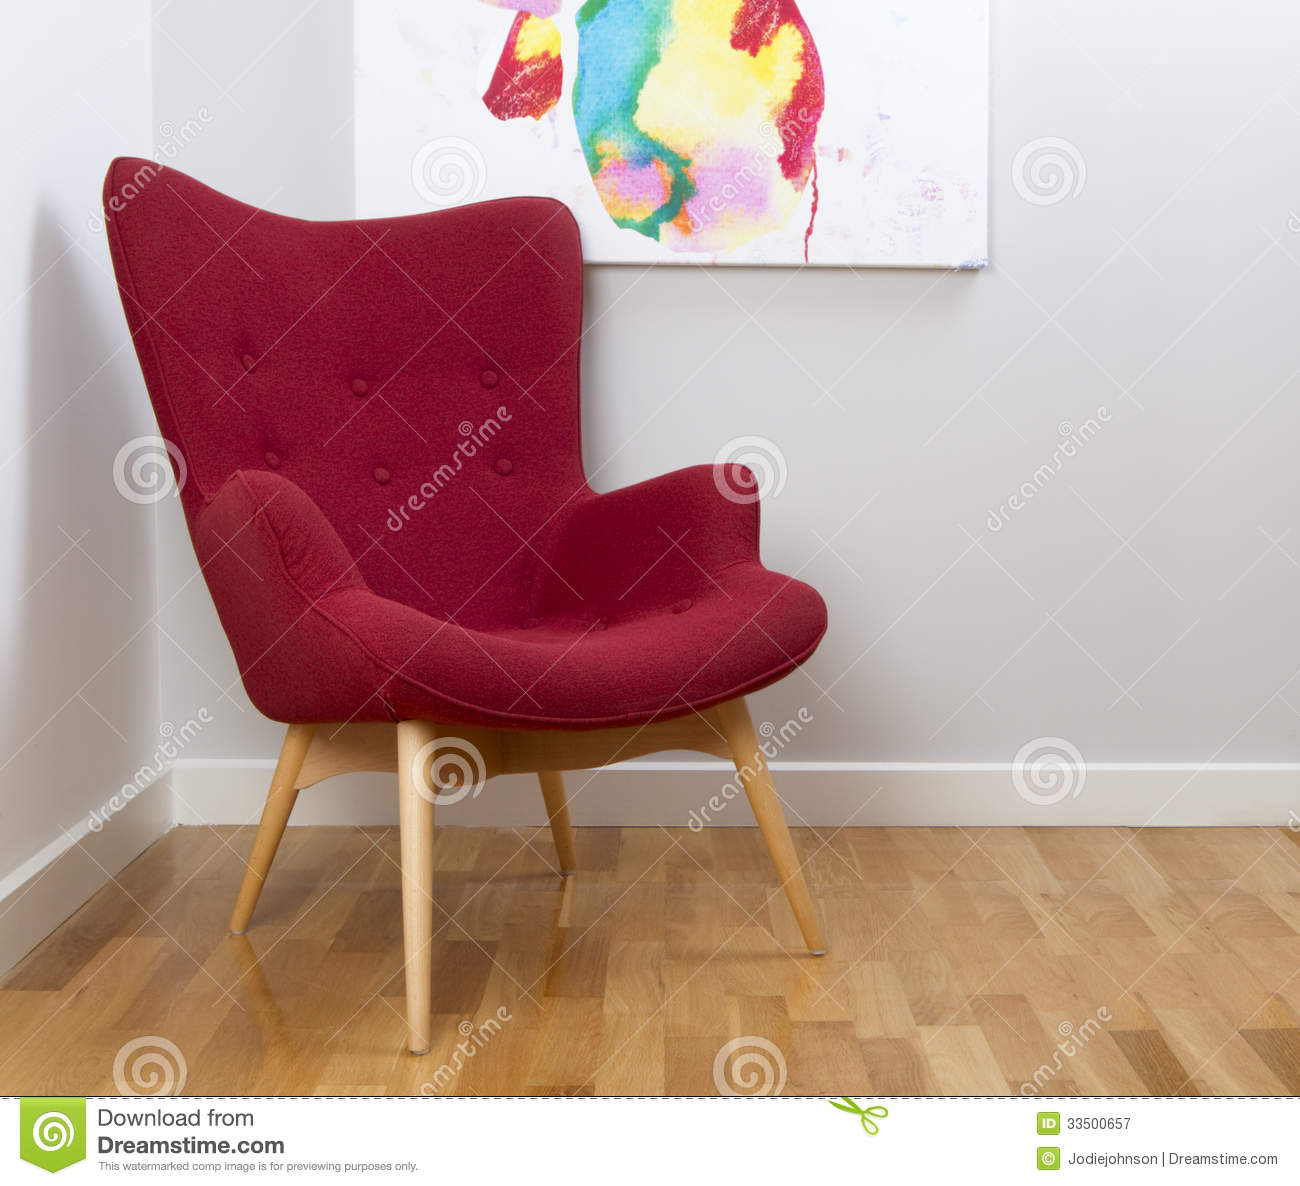 Retro Vintage Classic Red Chair Royalty Free Stock